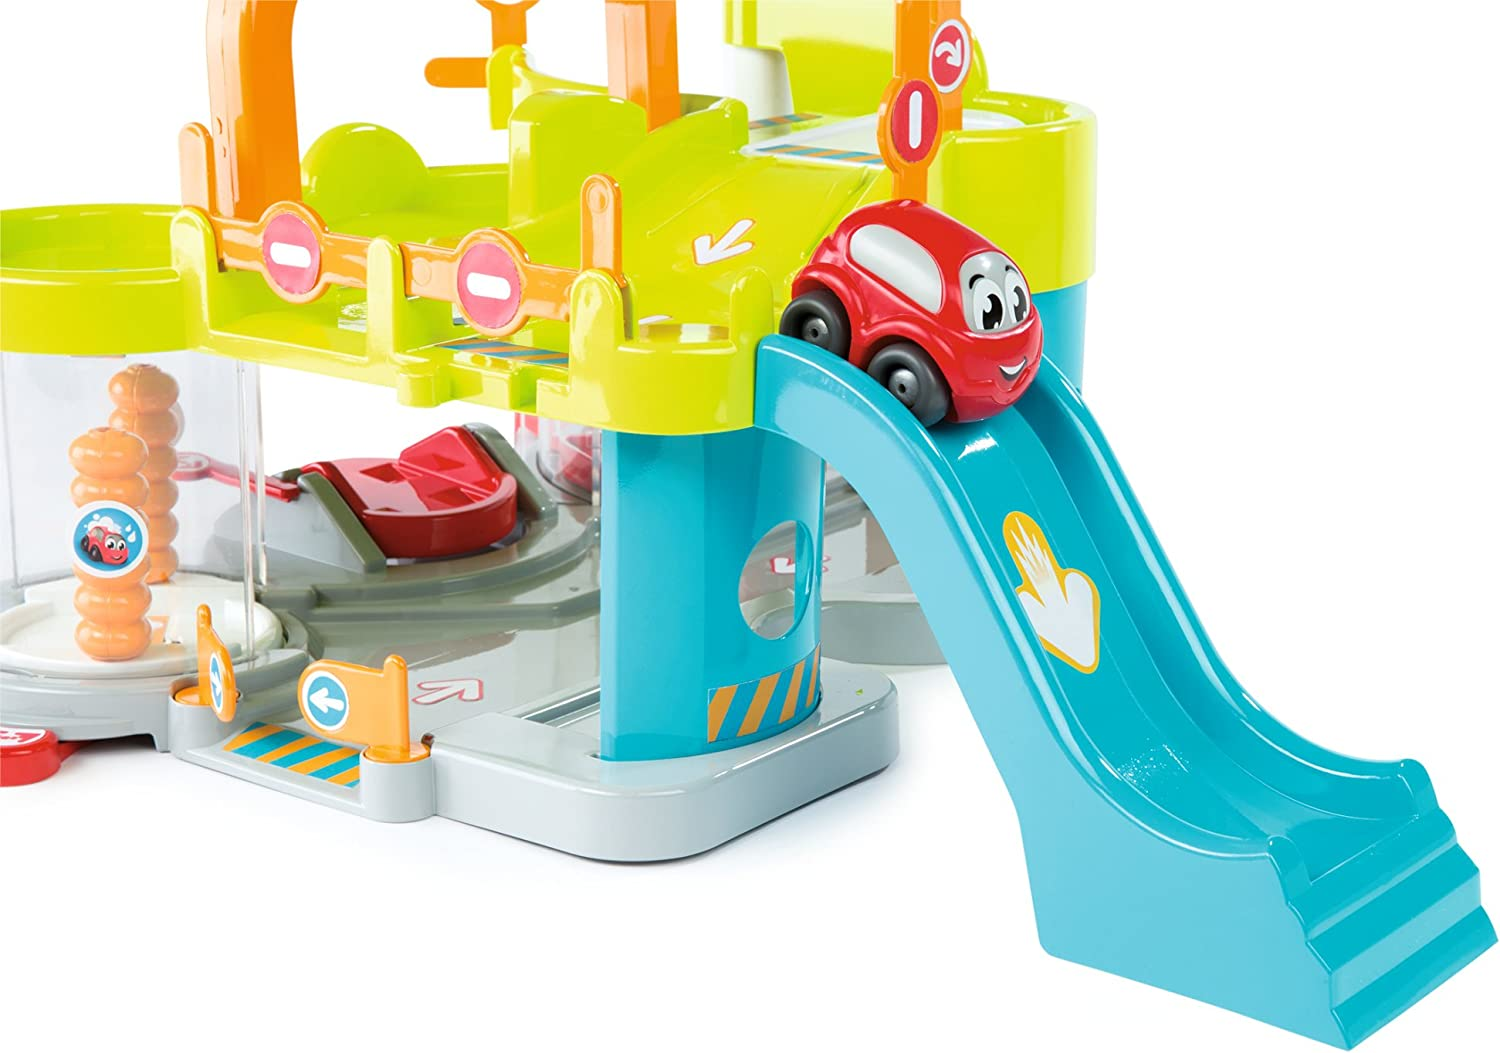 Smoby 120402 Planet My First Garage Pretend Play